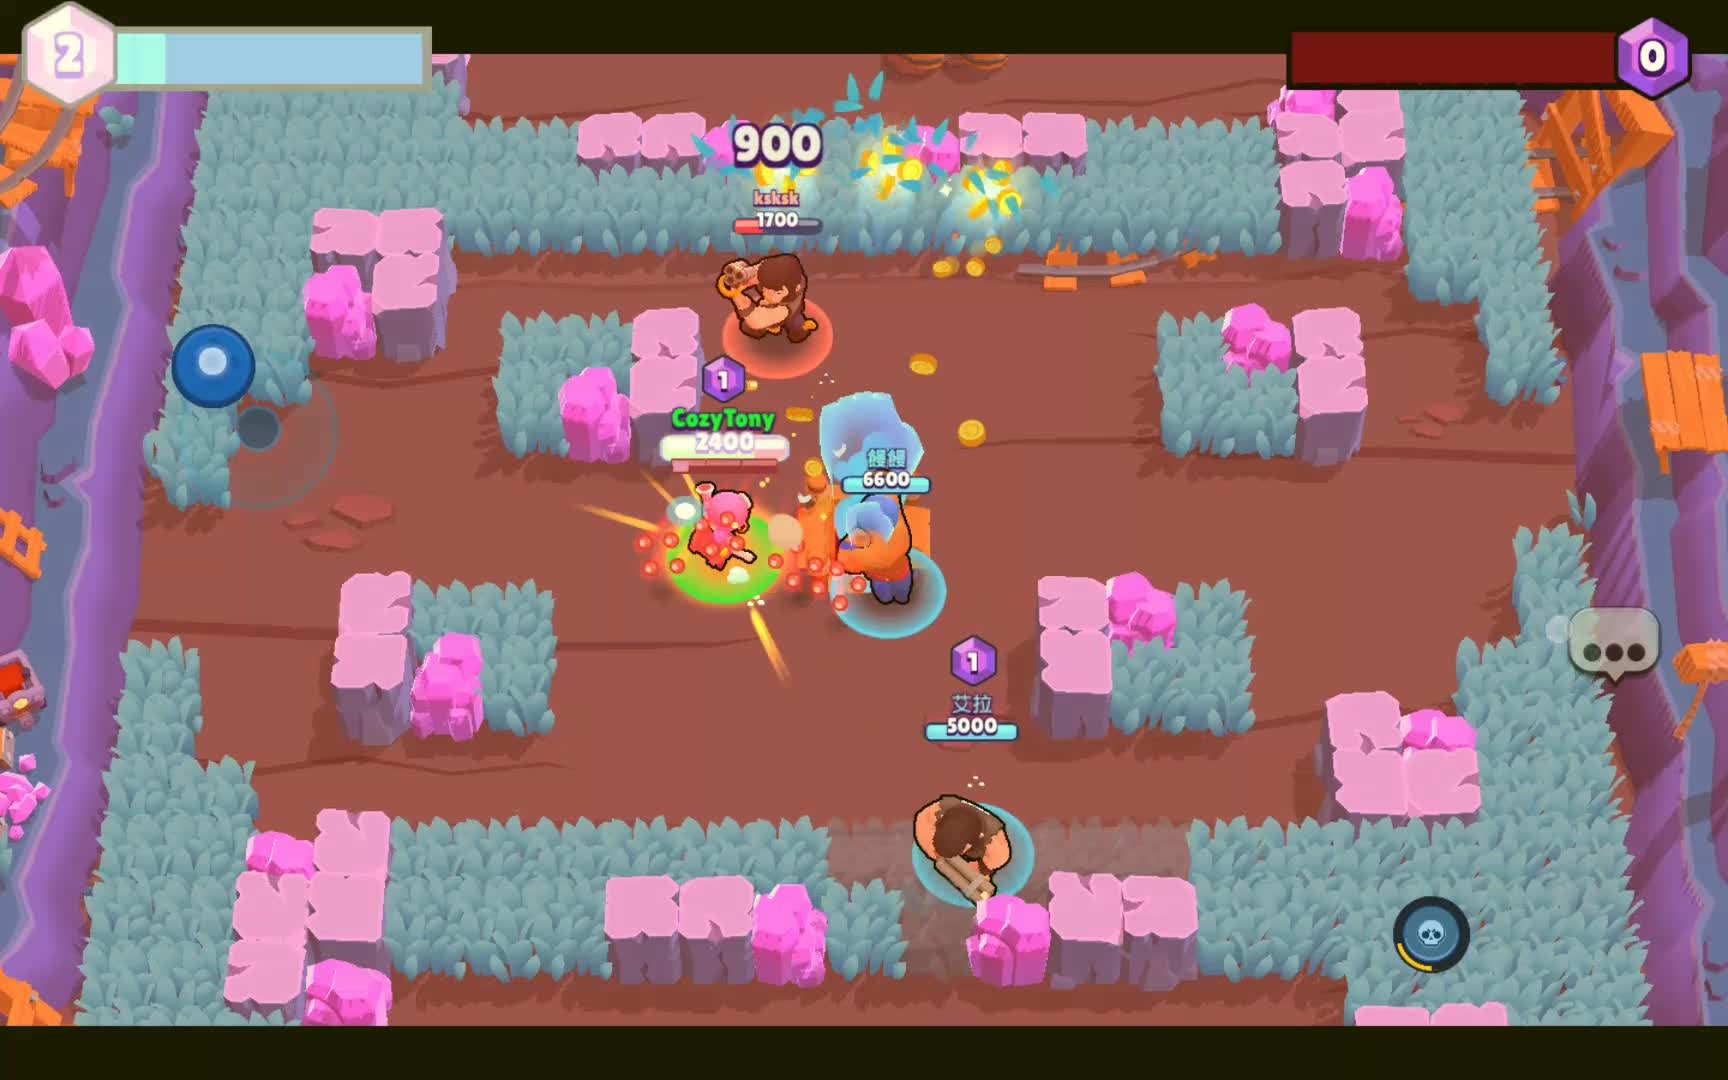 Brawl Stars: General - Youtube Videos Be like 2 video cover image 1